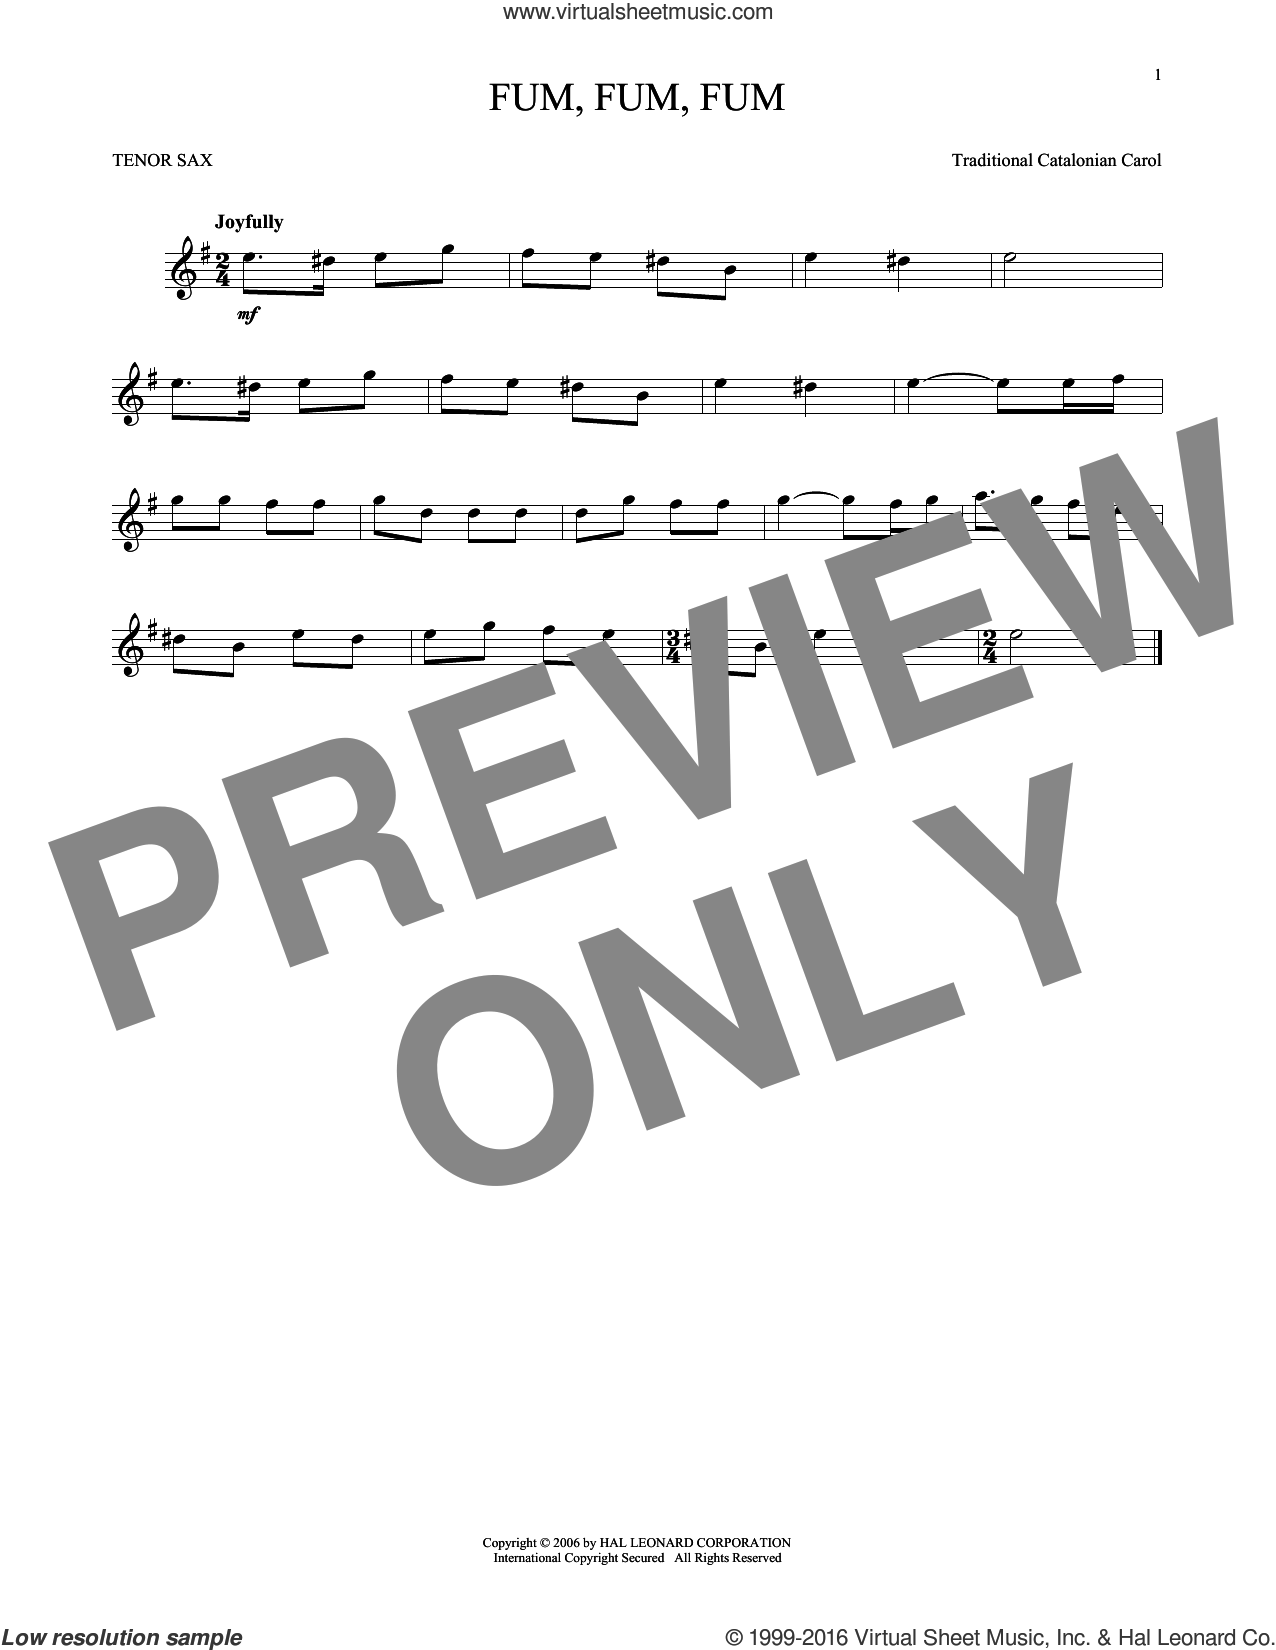 Fum, Fum, Fum sheet music for tenor saxophone solo. Score Image Preview.